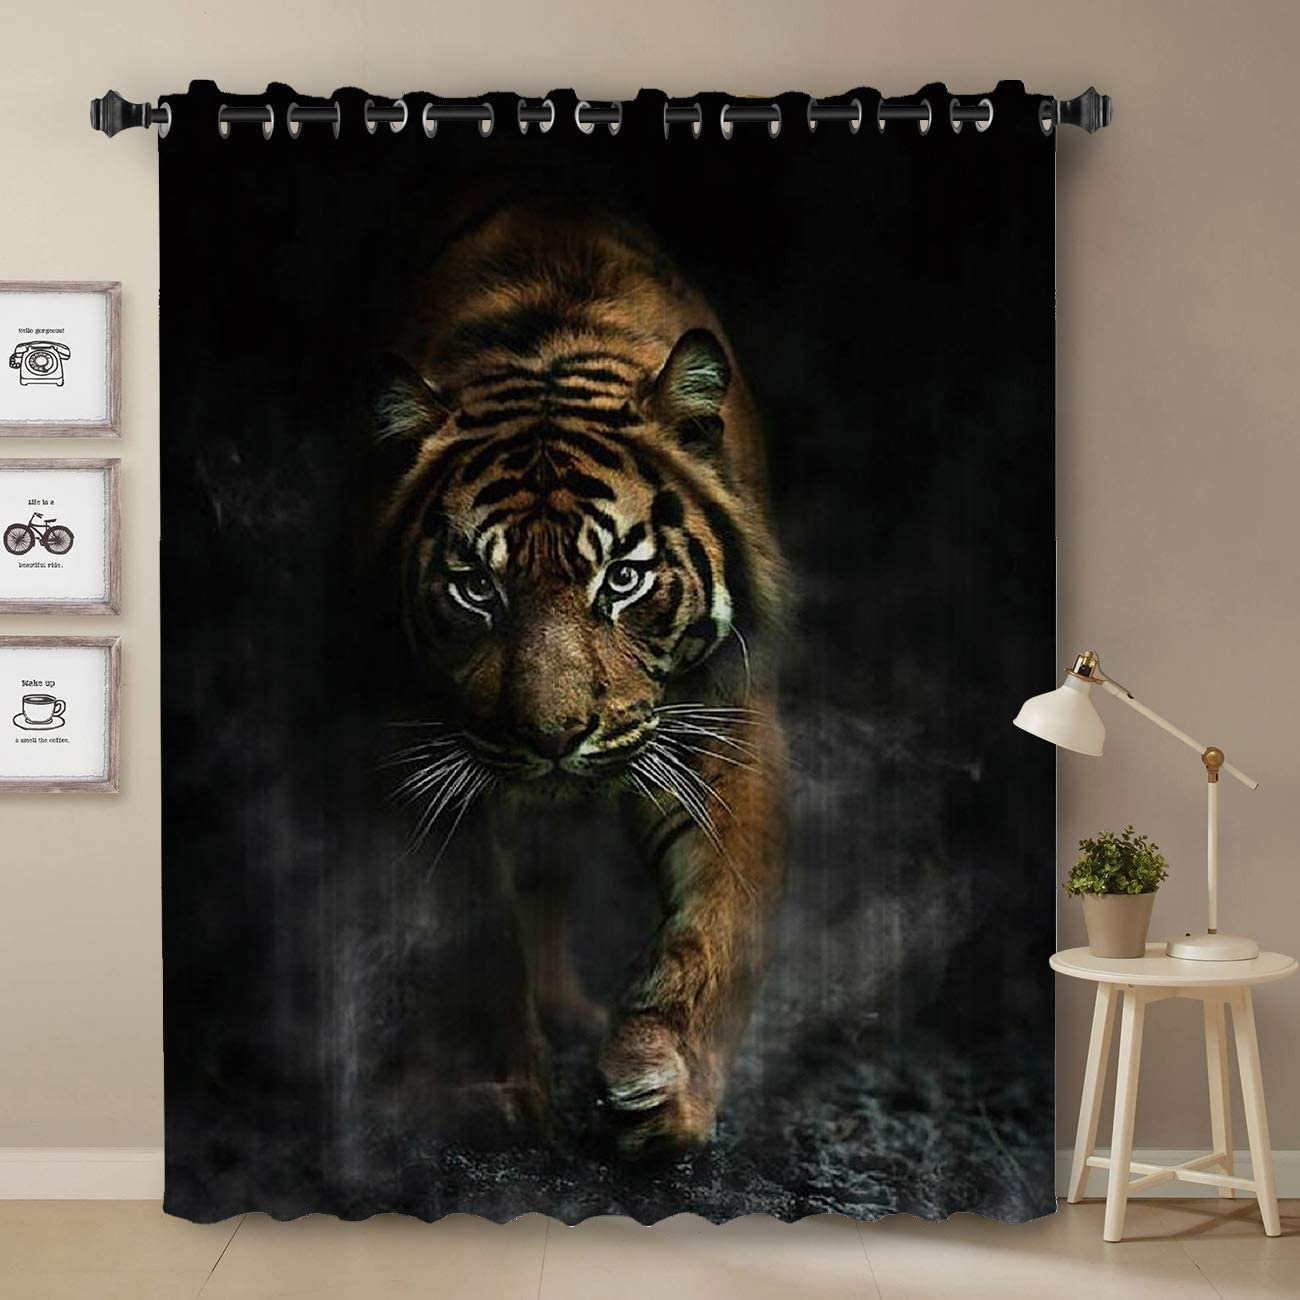 Darkening Blackout Curtain for Bedroom - Save money Long Window Tre Challenge the lowest price of Japan ☆ 72 inch